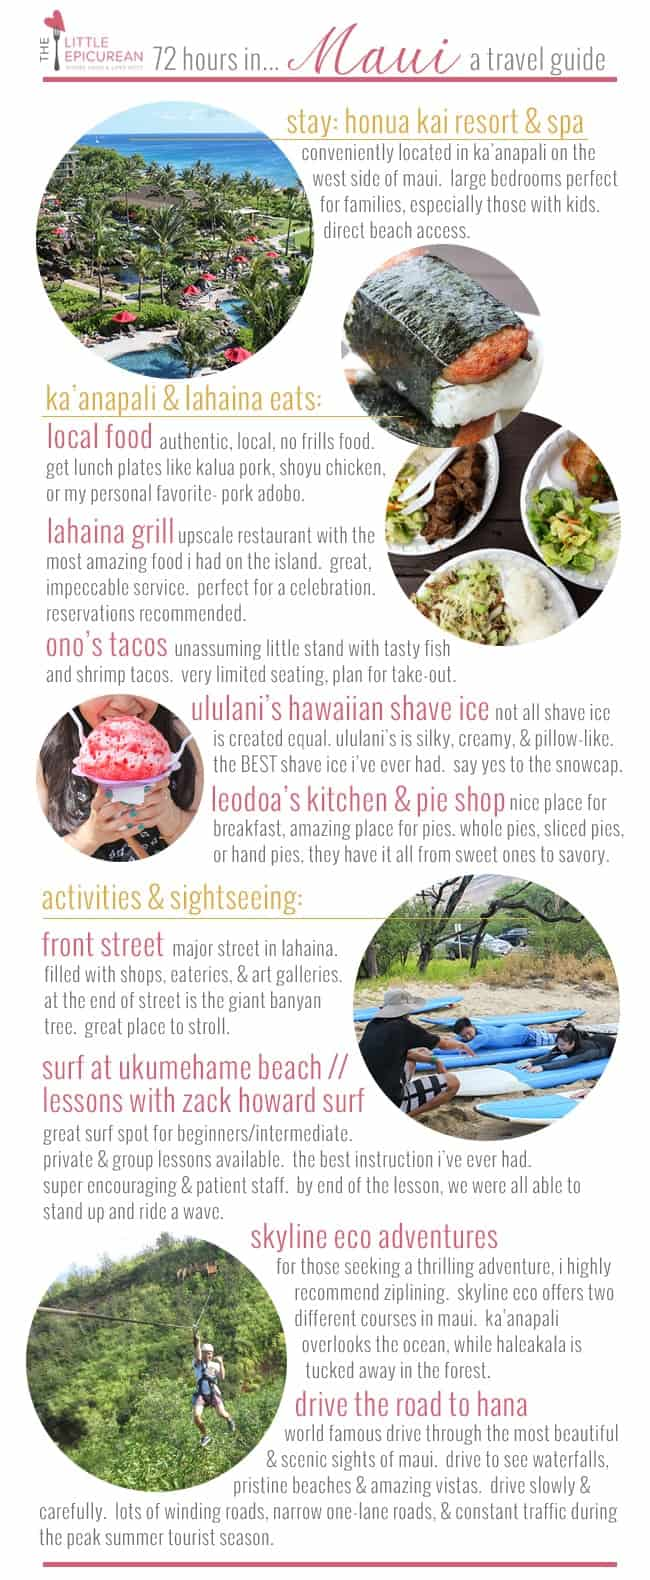 72 hours in Maui: a travel guide